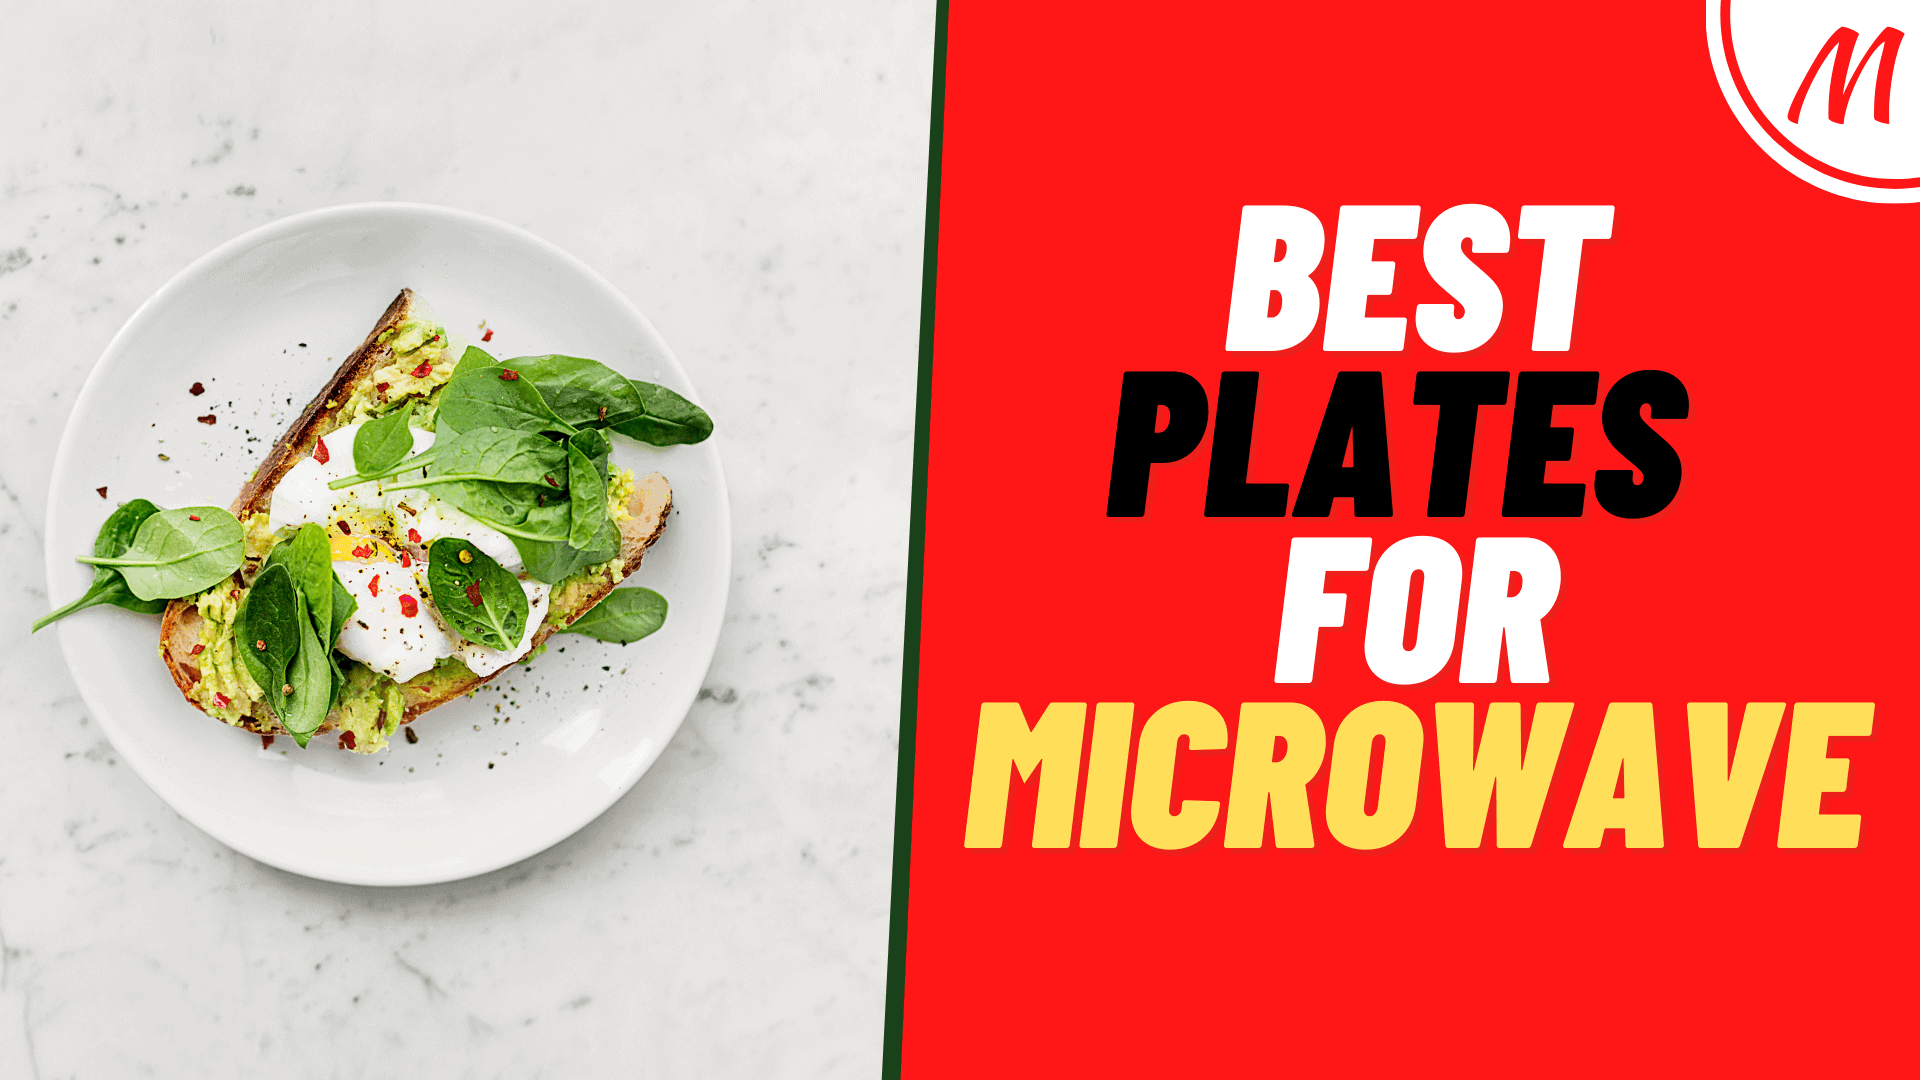 Best Plates For Microwave